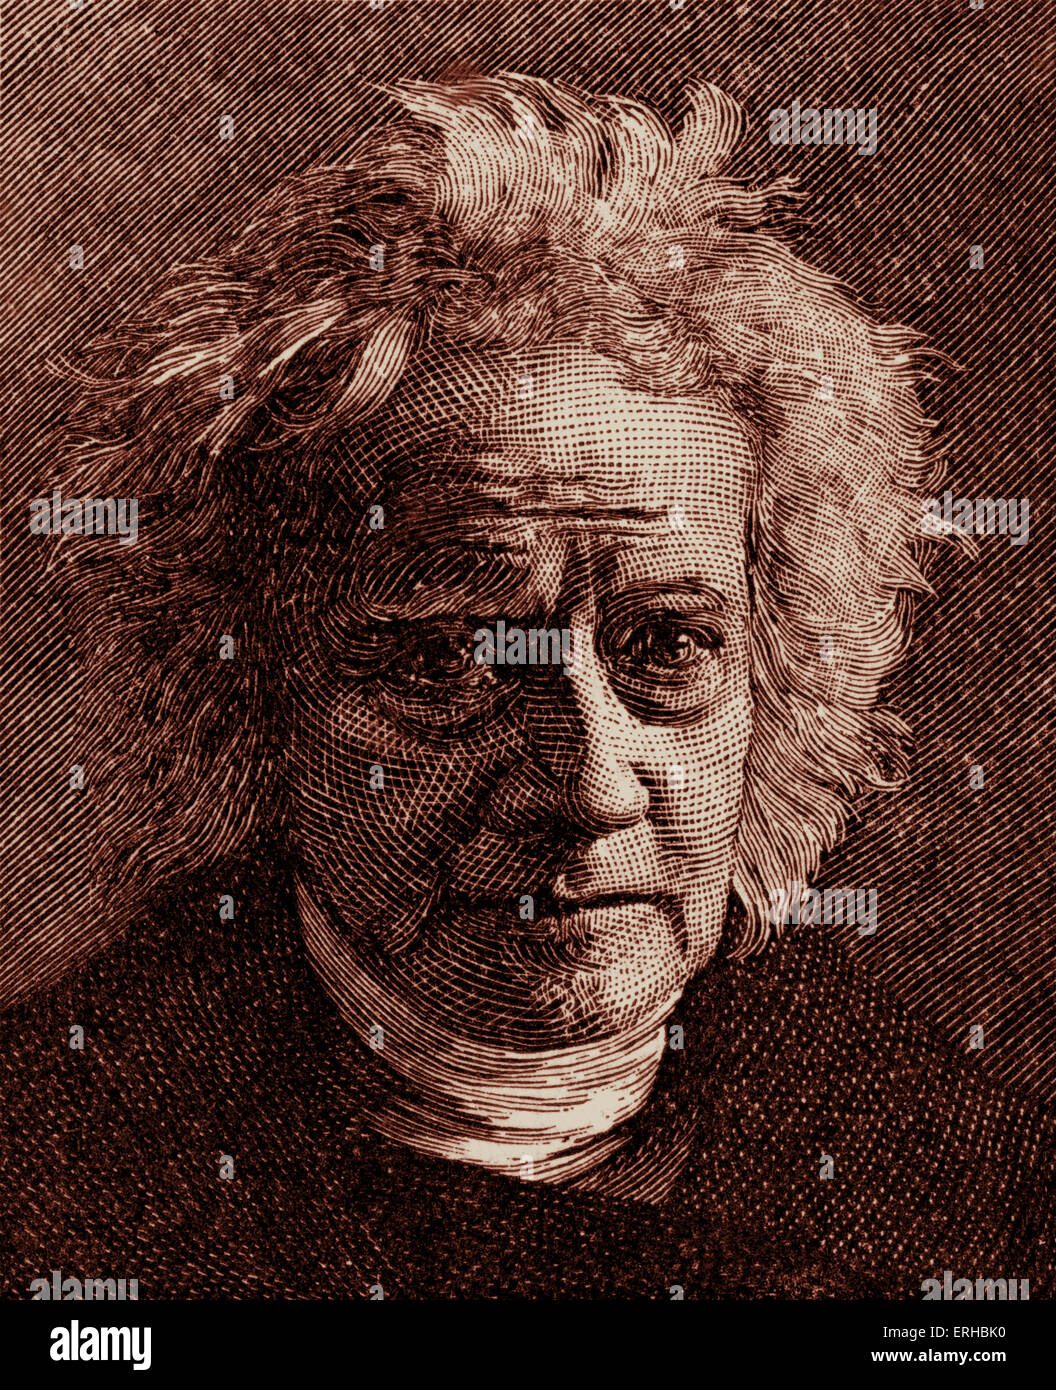 Sir John Herschel (1792 – 1871).  English mathematician, astronomer, chemist, and experimental photographer/inventor. - Stock Image